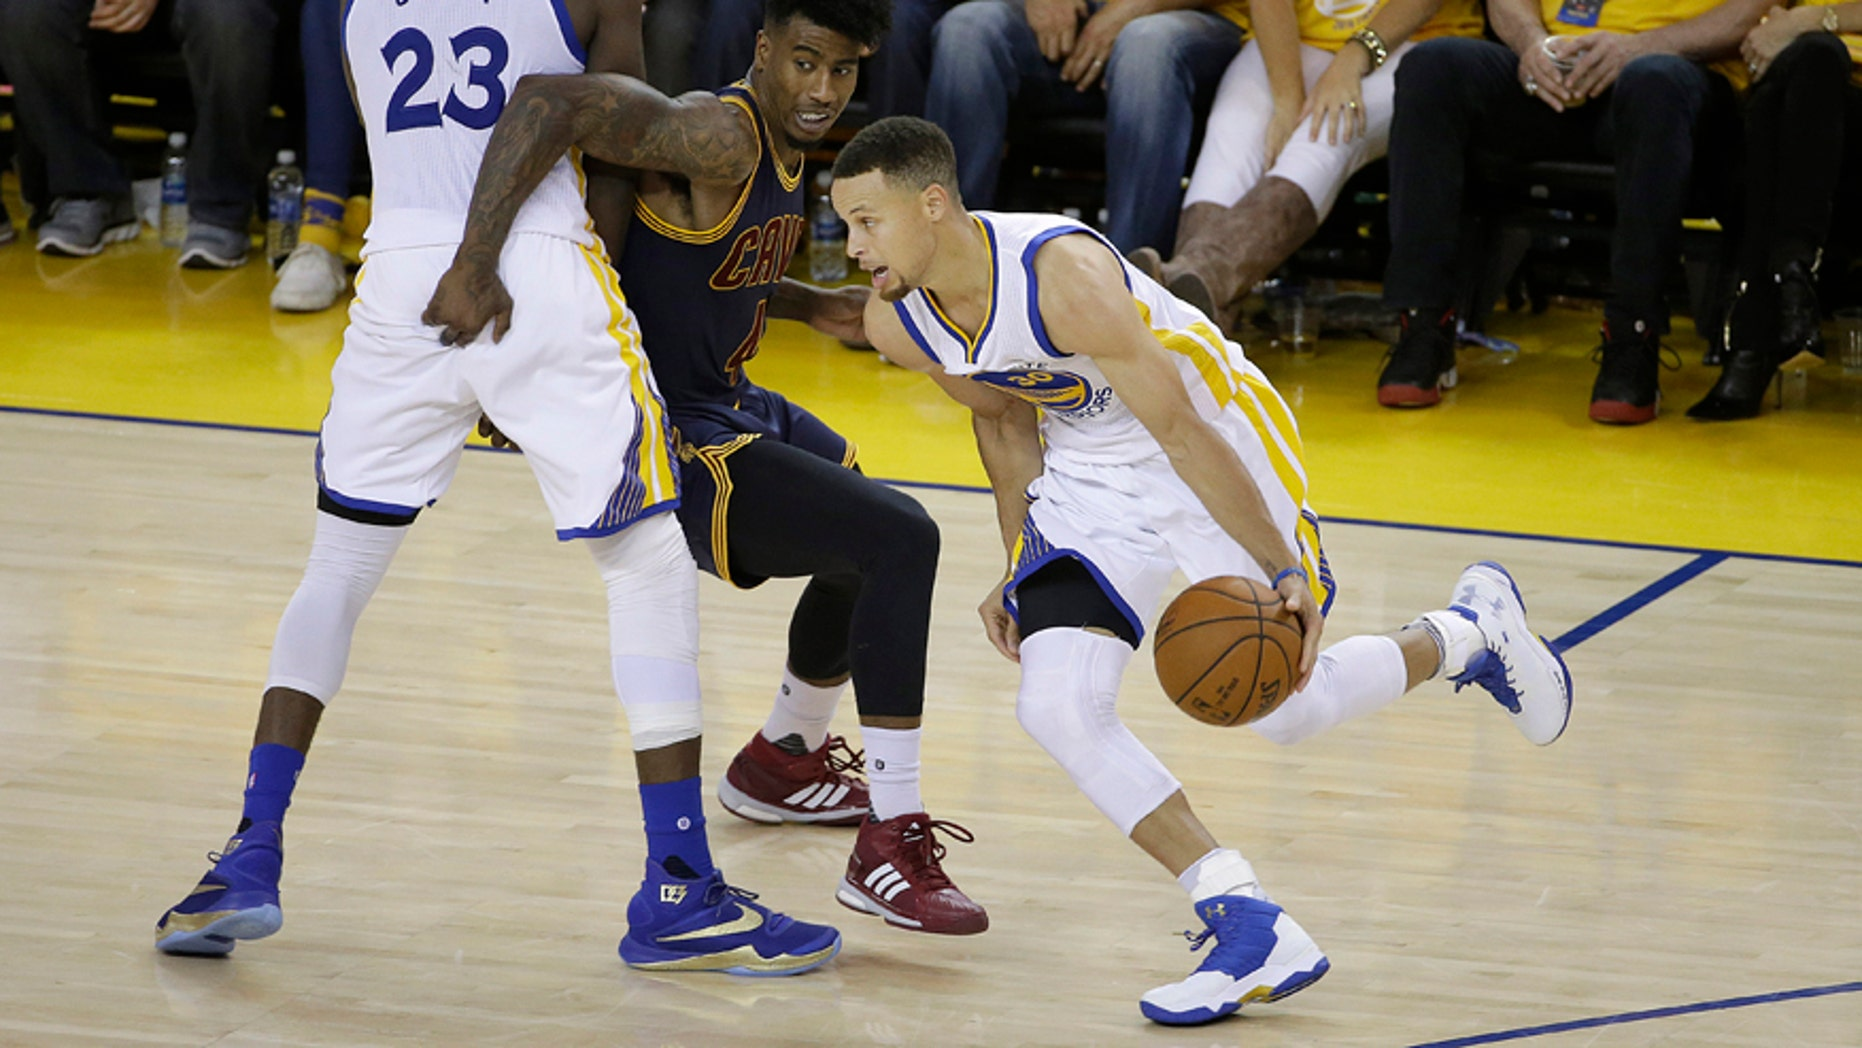 June 5, 2016: Golden State Warriors guard Stephen Curry (30) dribbles as forward Draymond Green (23) blocks Cleveland Cavaliers guard Iman Shumpert during the second half of Game 2 of basketball's NBA Finals in Oakland, Calif.